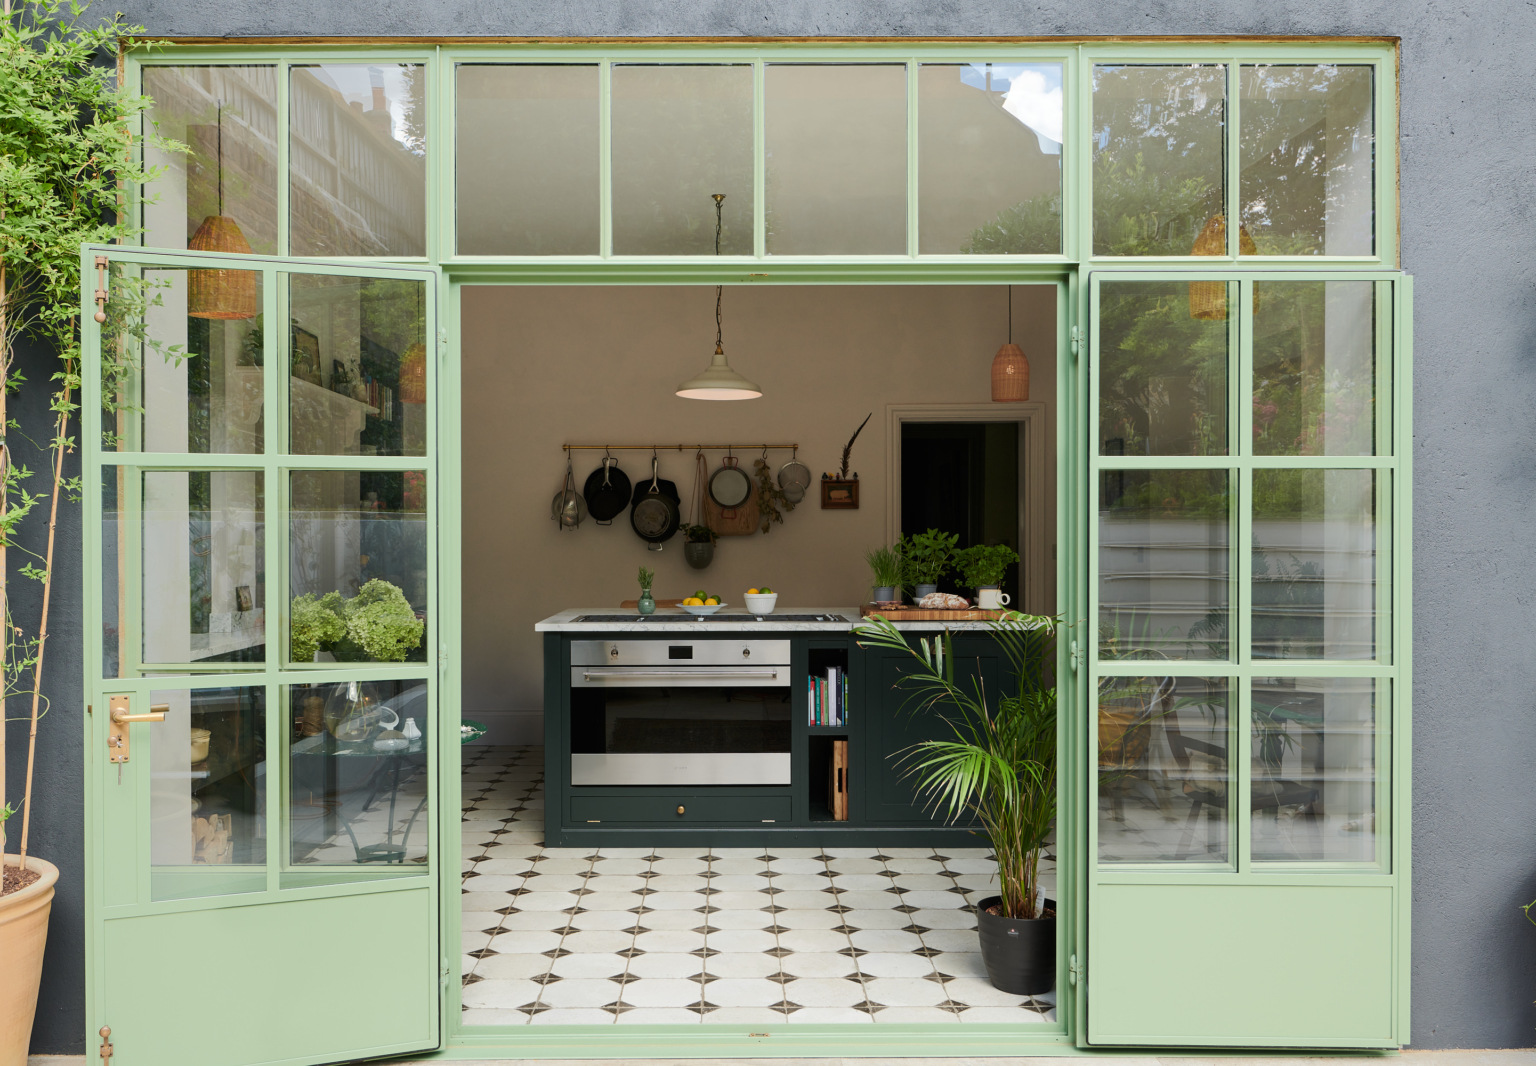 Kitchen of the Week: 'Wes Anderson Meets Provencal' in West London